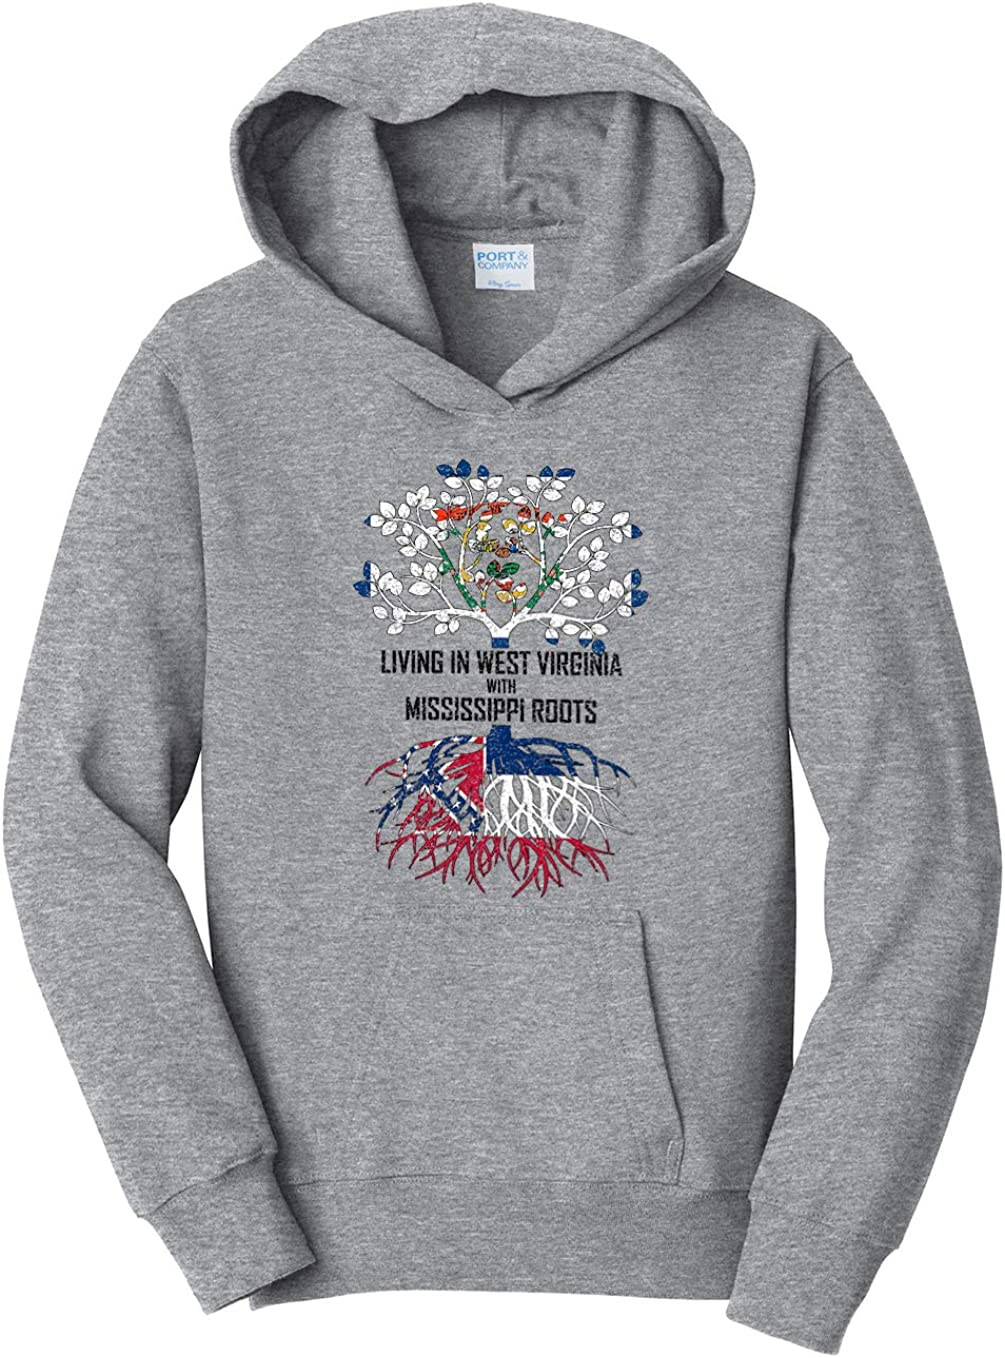 Tenacitee Girls Living in West Virginia with Mississippi Roots Hooded Sweatshirt